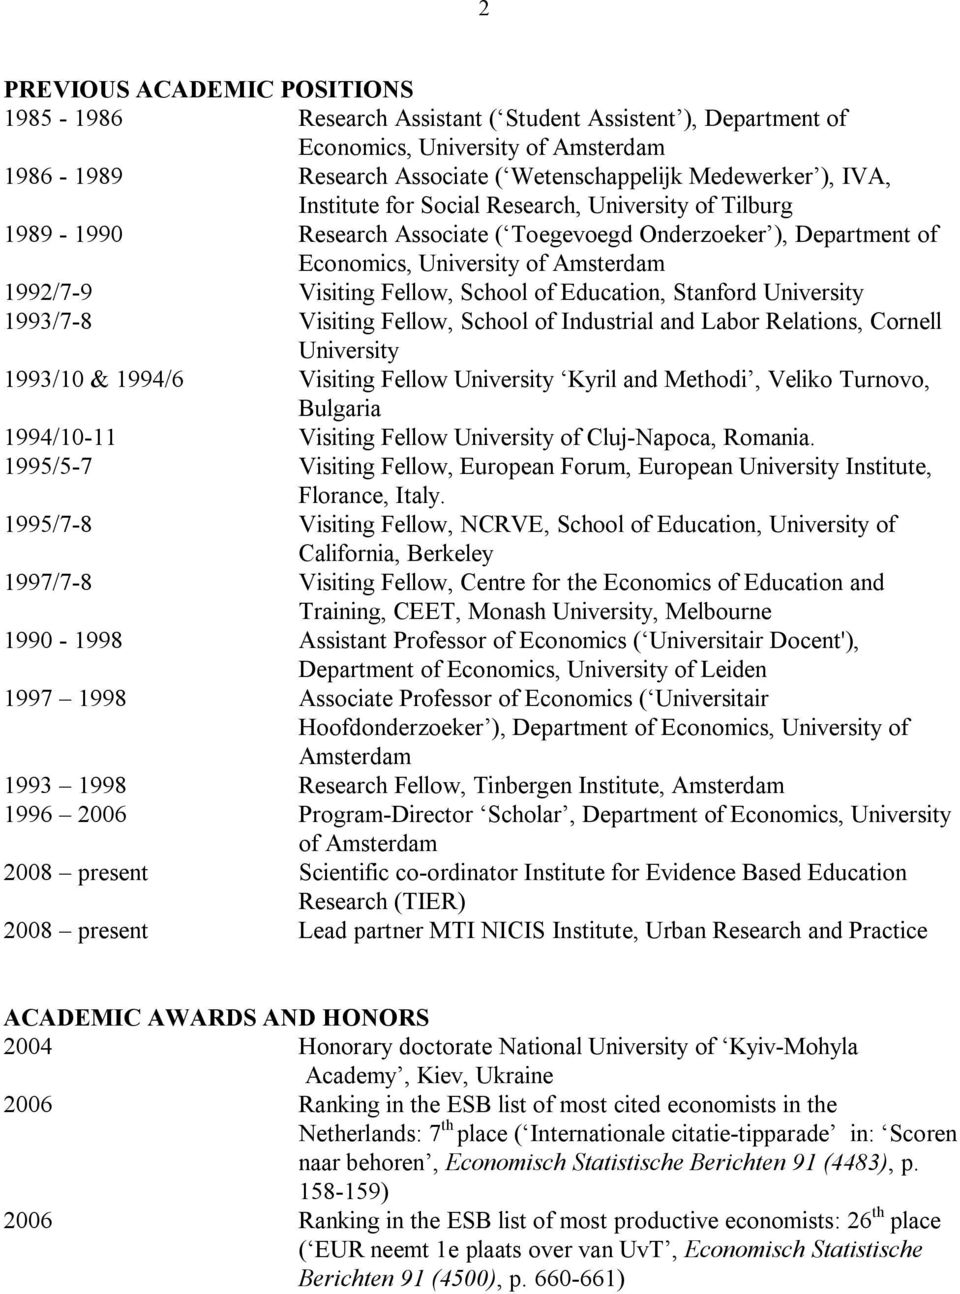 Education, Stanford University 1993/7-8 Visiting Fellow, School of Industrial and Labor Relations, Cornell University 1993/10 & 1994/6 Visiting Fellow University Kyril and Methodi, Veliko Turnovo,